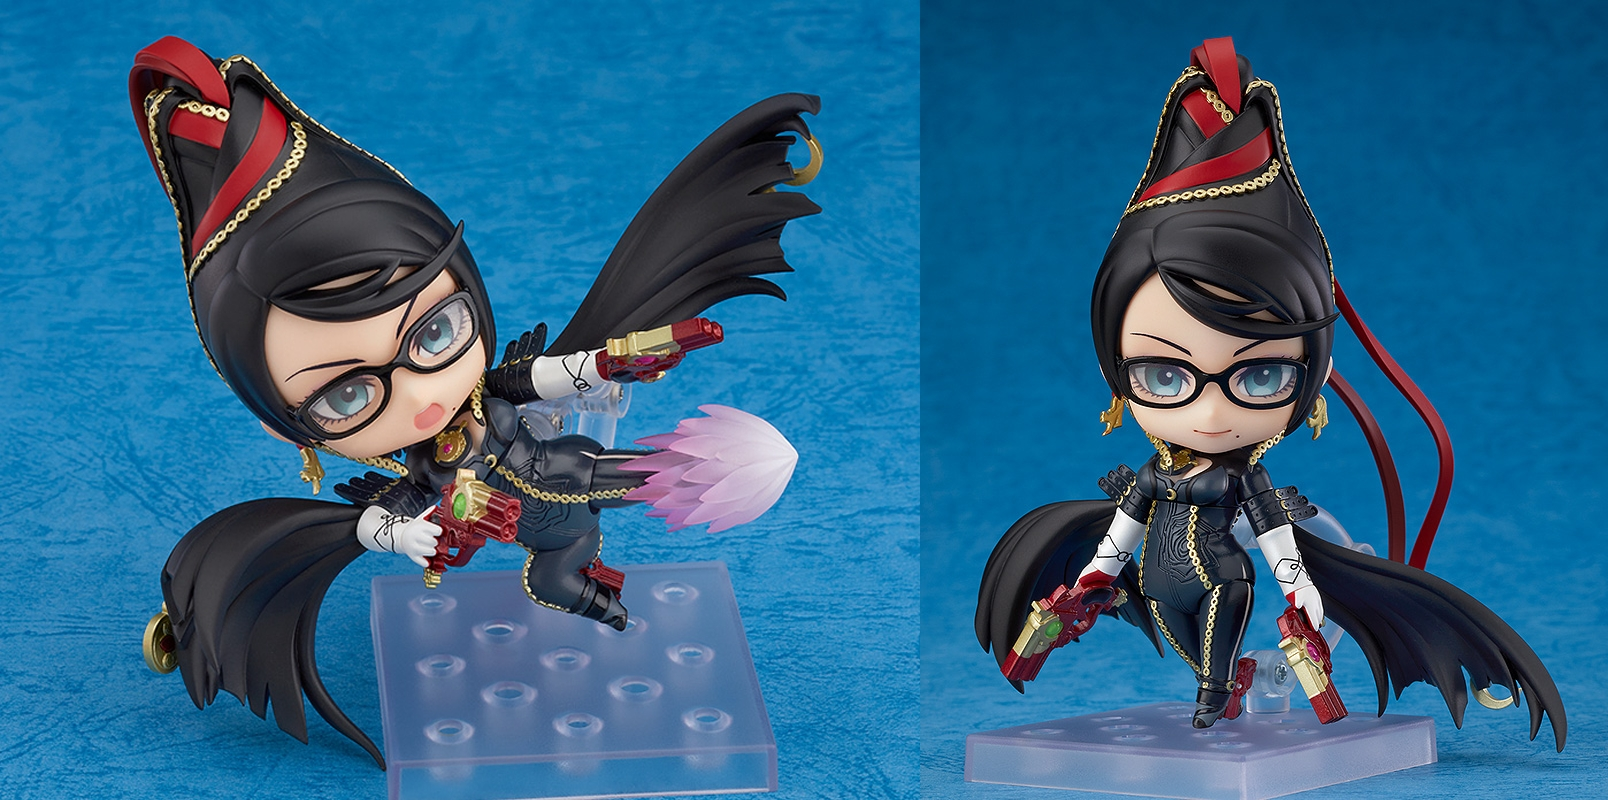 Bayonetta Reimagined As A Stylish Nendoroid By Good Smile Company